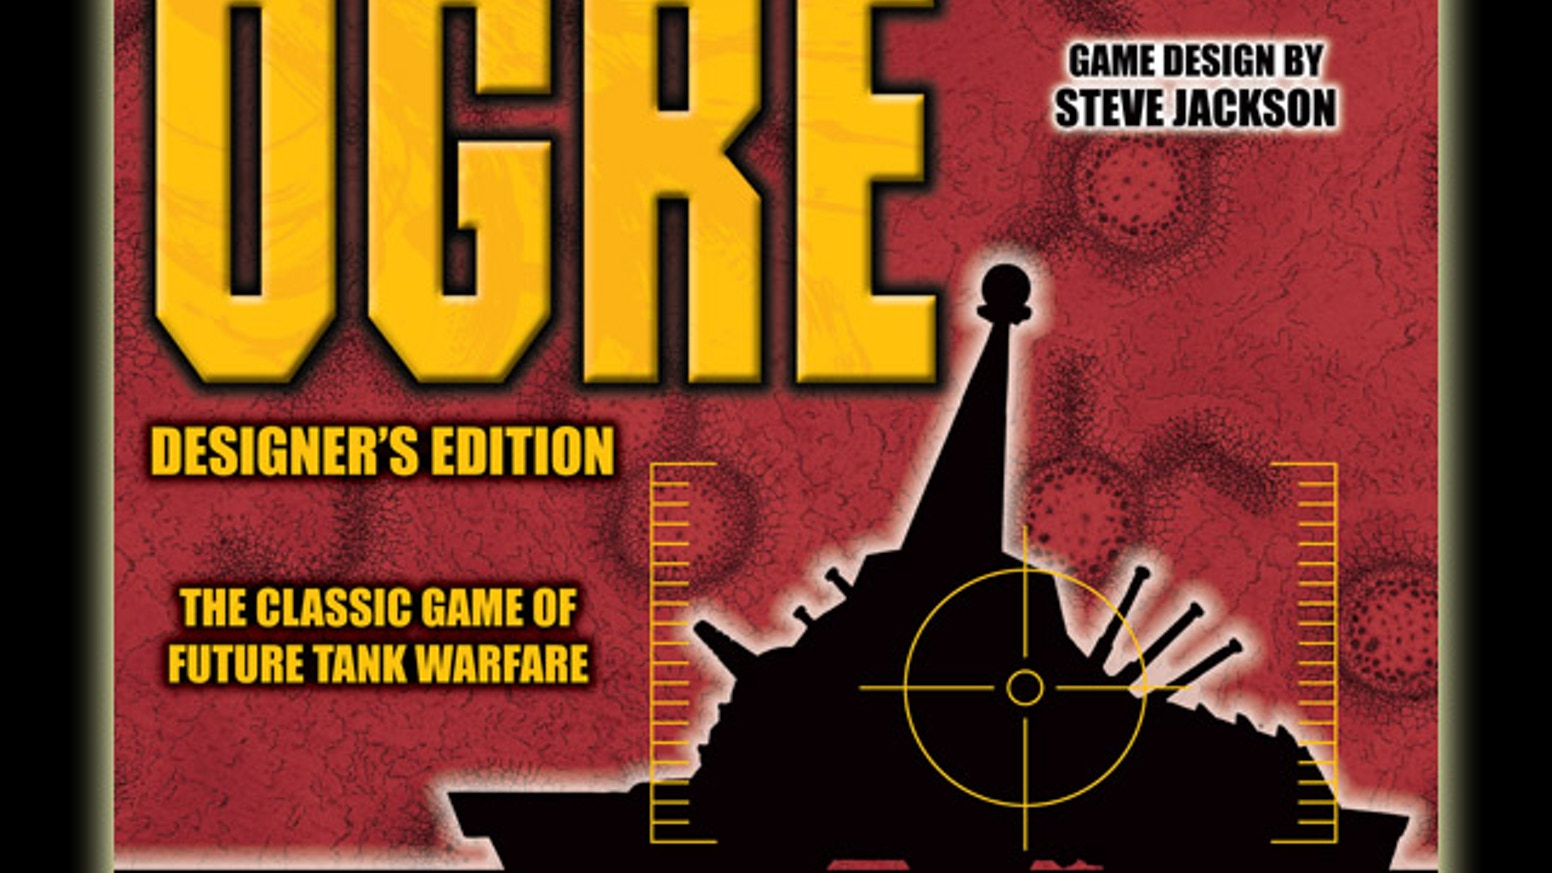 35 years after the first publication of OGRE, we're coming back with a massive new edition, and YOU can make it better.